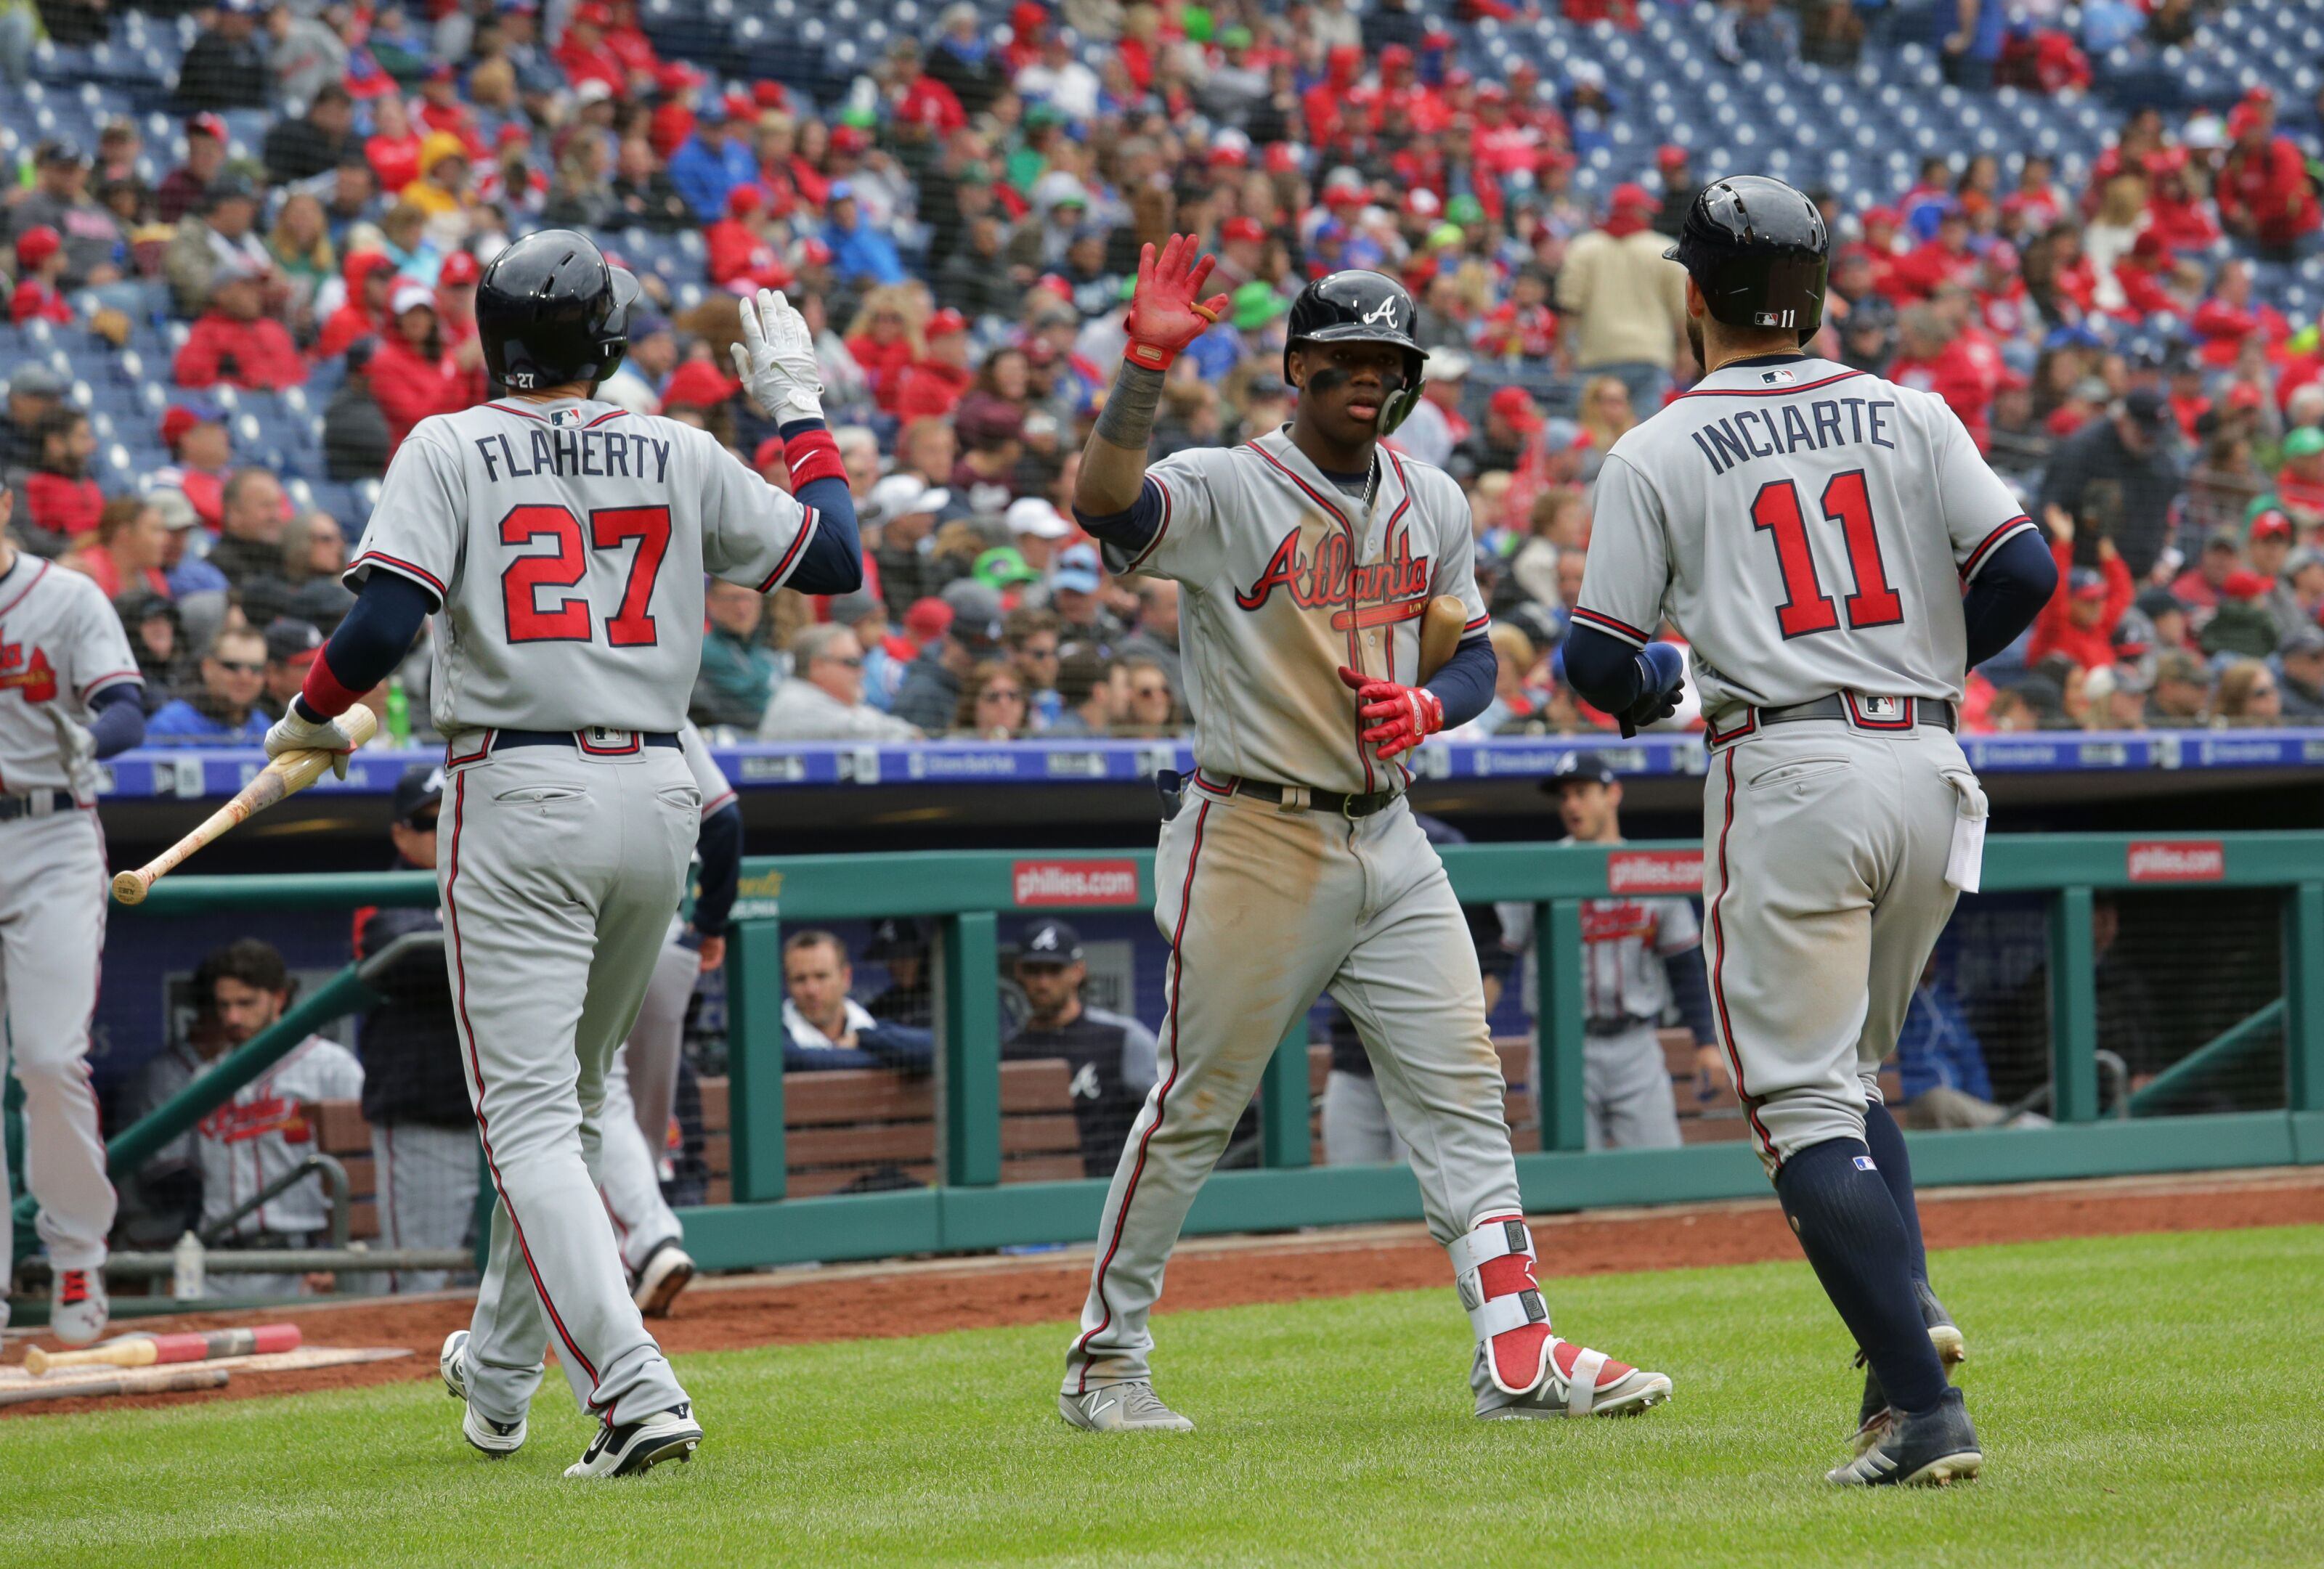 952838966-atlanta-braves-v-philadelphia-phillies.jpg